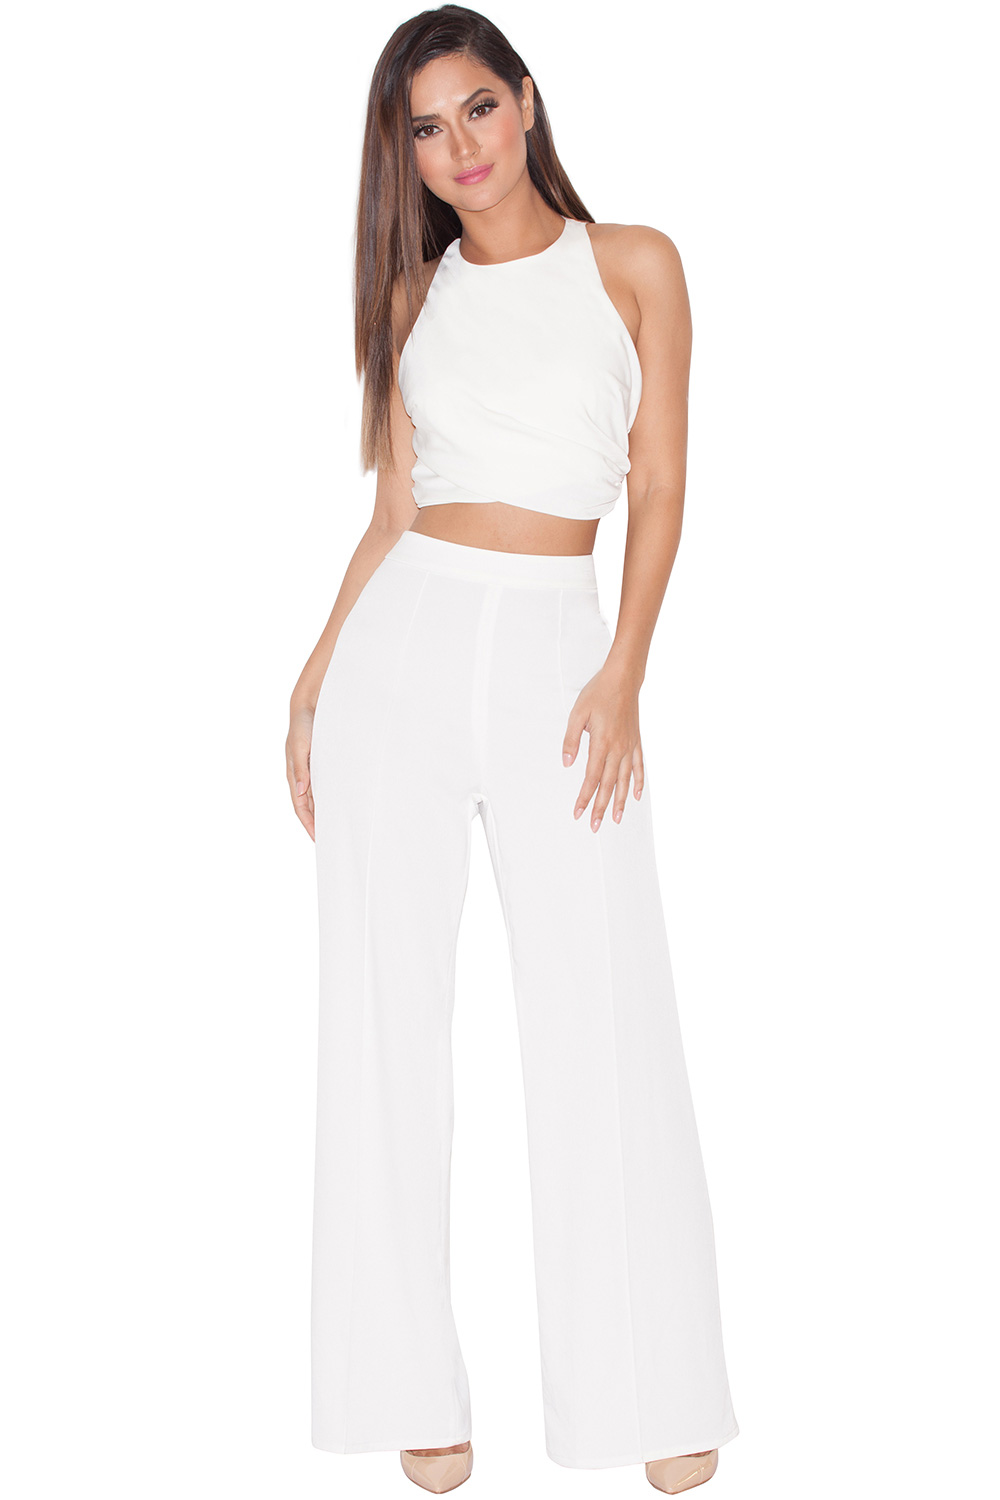 Clothing : Bottoms : 'Karija' White Stretch Crepe Wide Leg Trousers